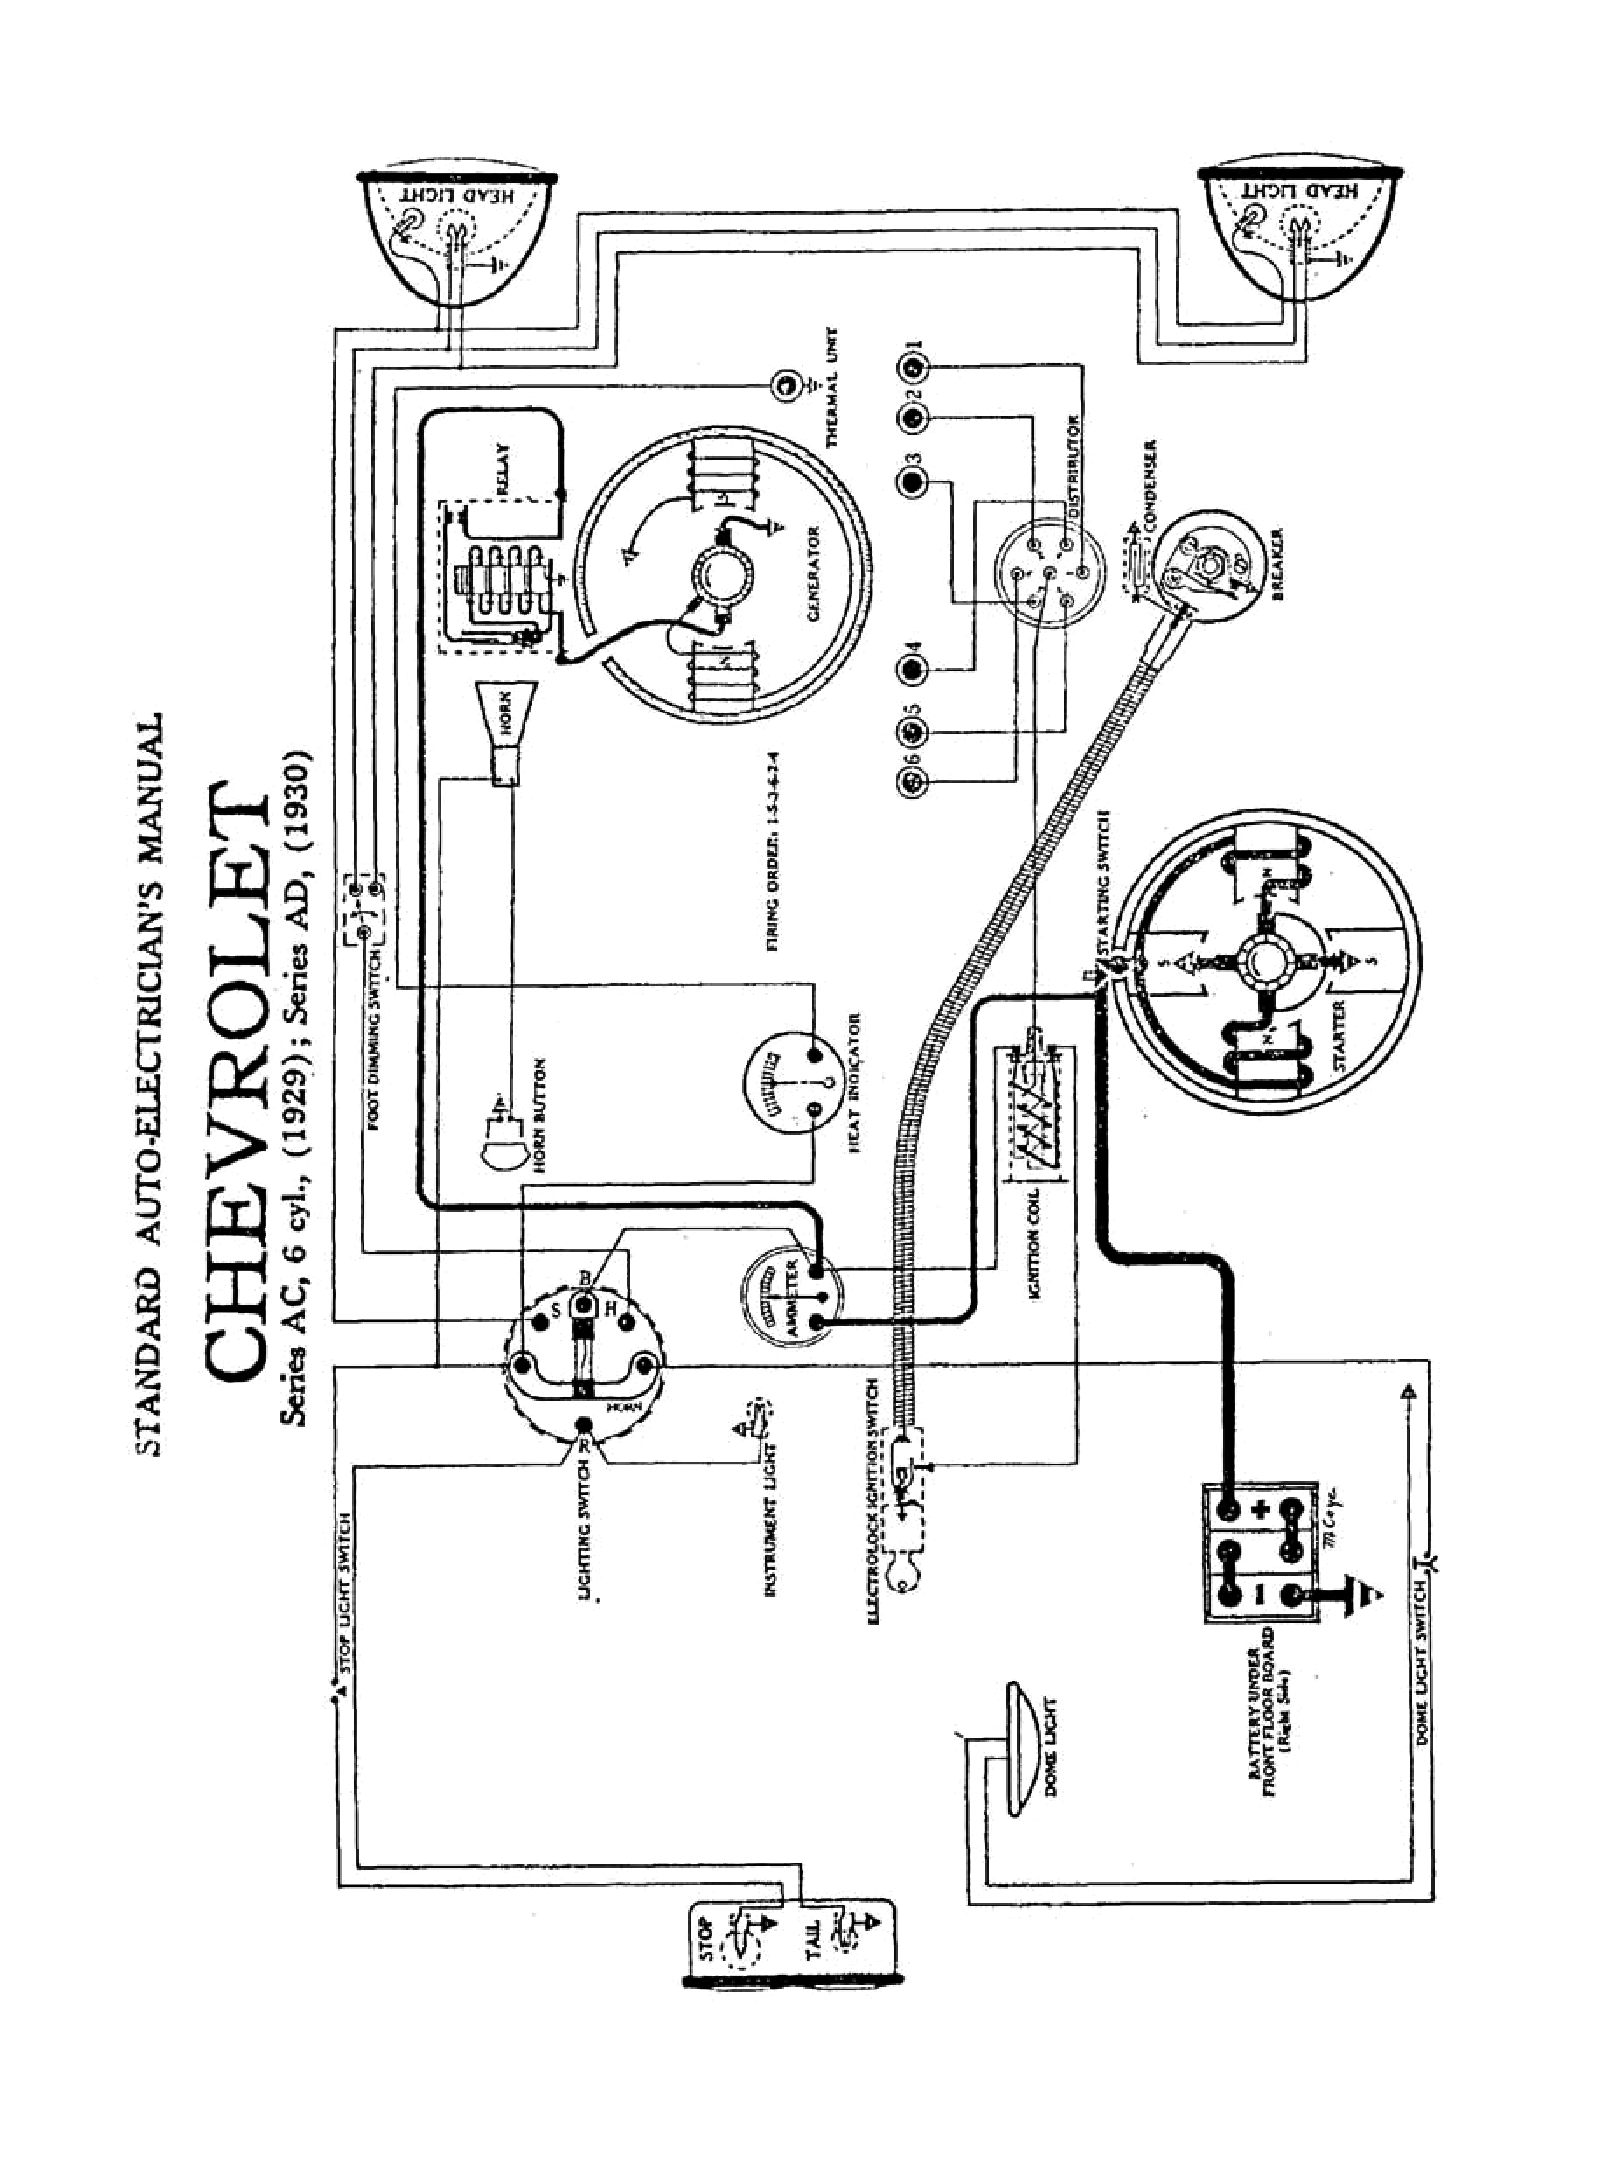 1931 Chevrolet Wiring Diagram on car with flat tire